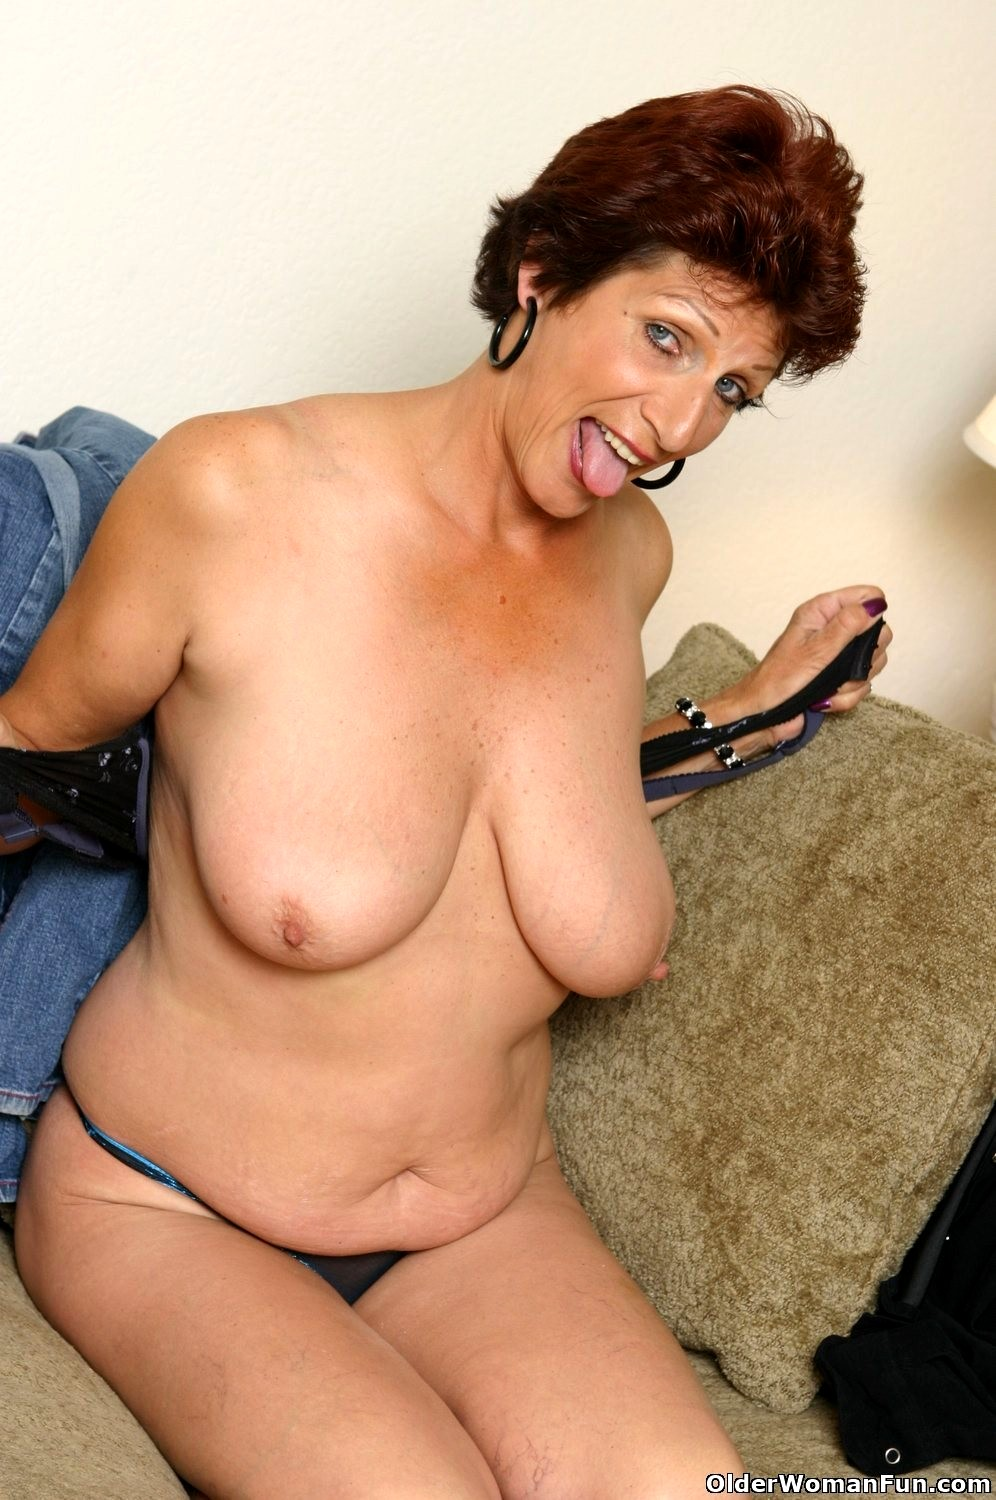 Sex Hd Mobile Pics Older Woman Fun Olderwomanfun Model -7044